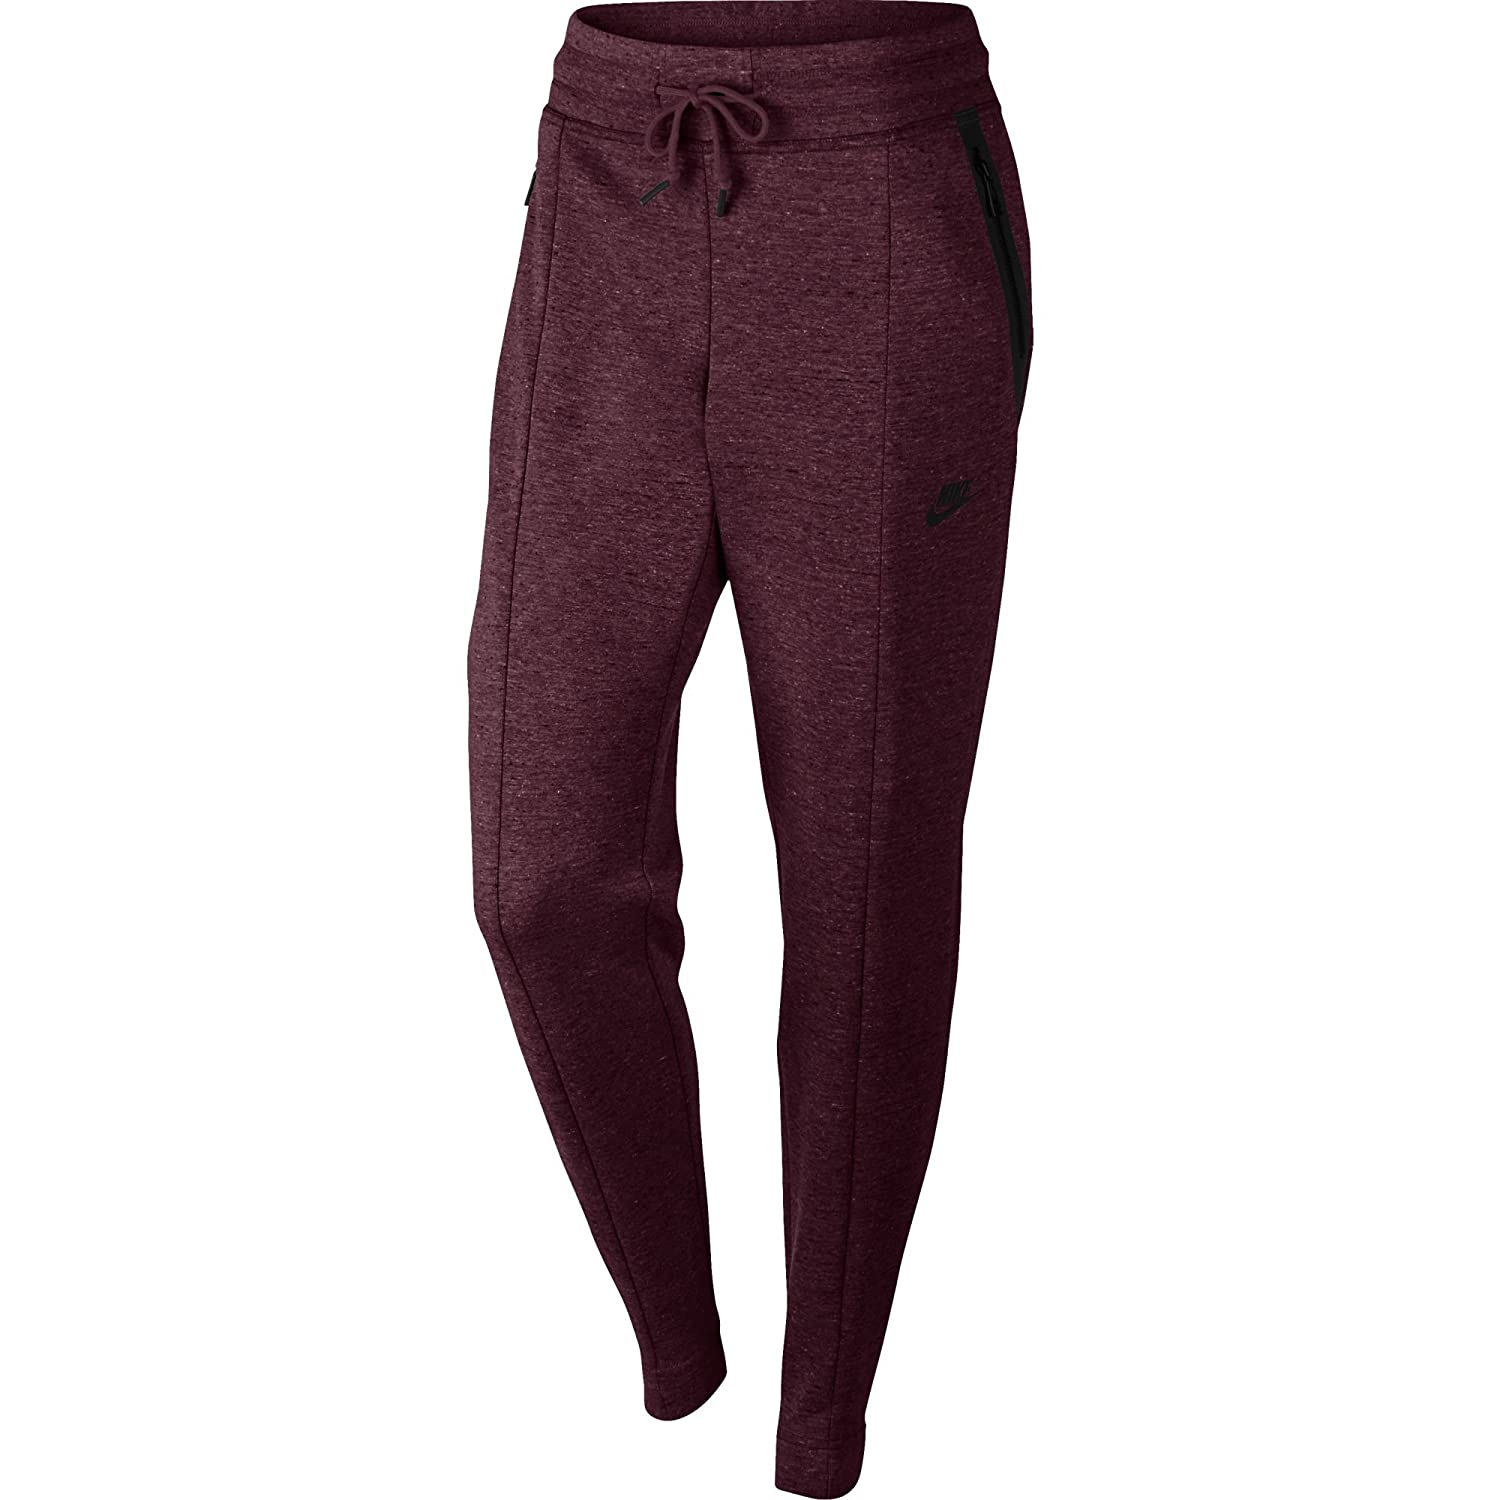 size 40 3f8c3 eb2a4 Amazon.com  NIKE Sportswear Tech Fleece Women s Pants Night Maroon Heather Black  803575-681 (Size XL)  Clothing